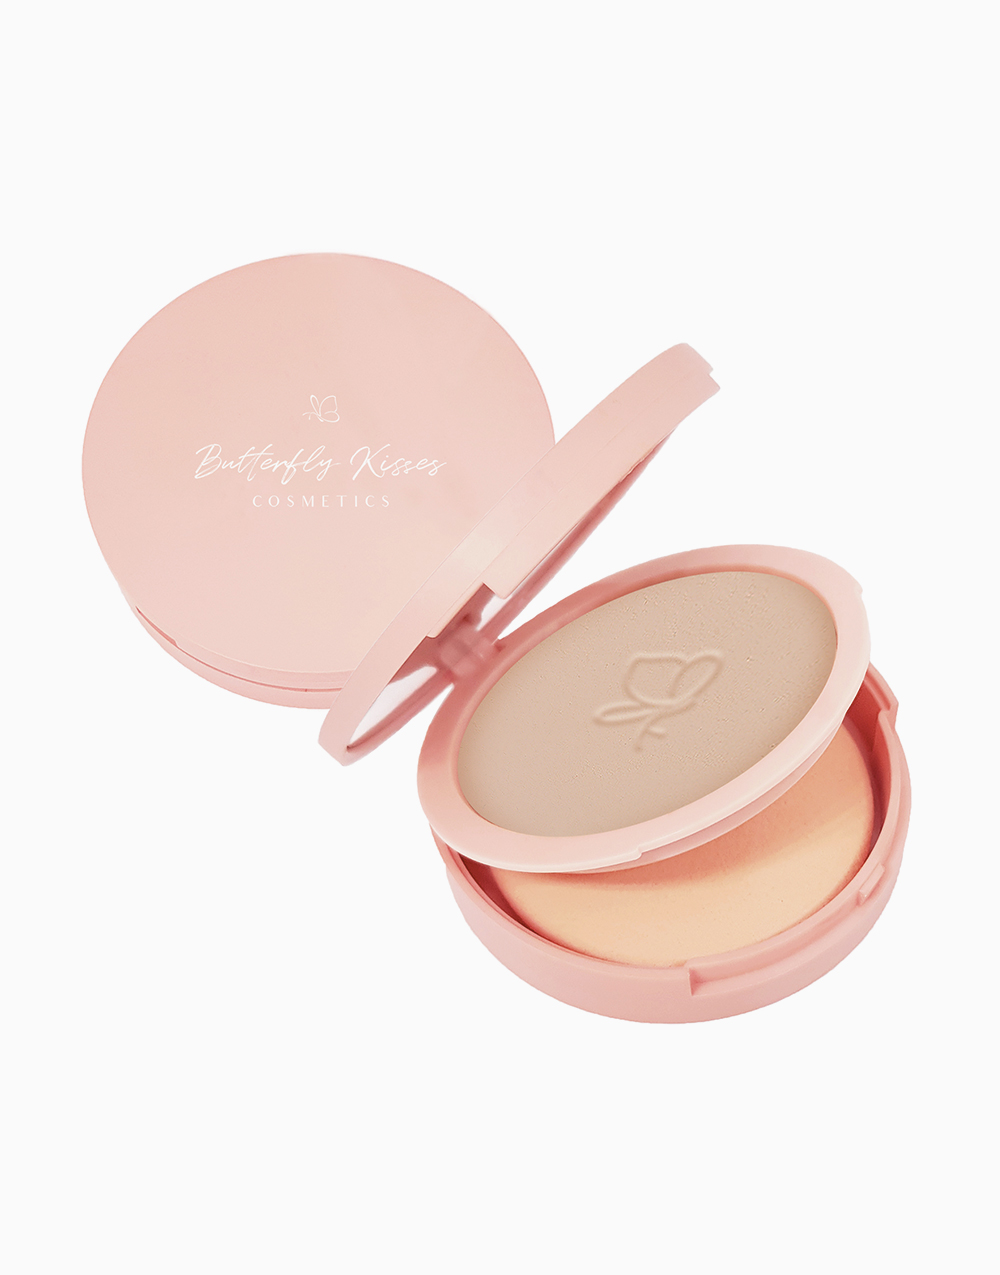 Skin Perfecting Matte Pressed Powder by Butterfly Kisses   Tan